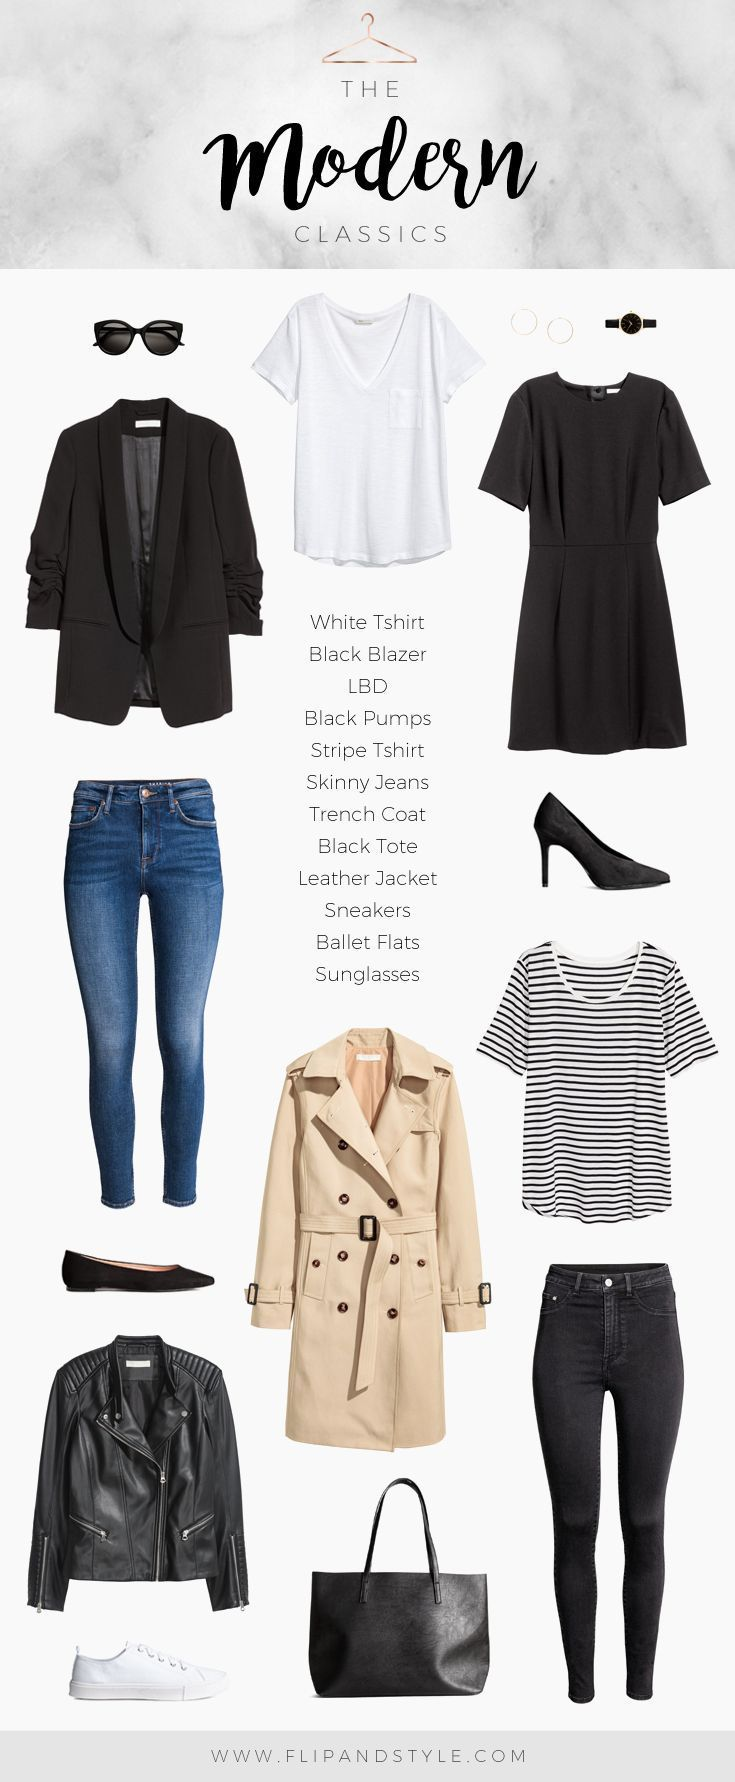 Modern classics for a capsule wardrobe | Style essentials & minimalist outfits, all pieces from H&M | Created by Vanessa at www.flipandstyle.com #wardrobebasicsforfall